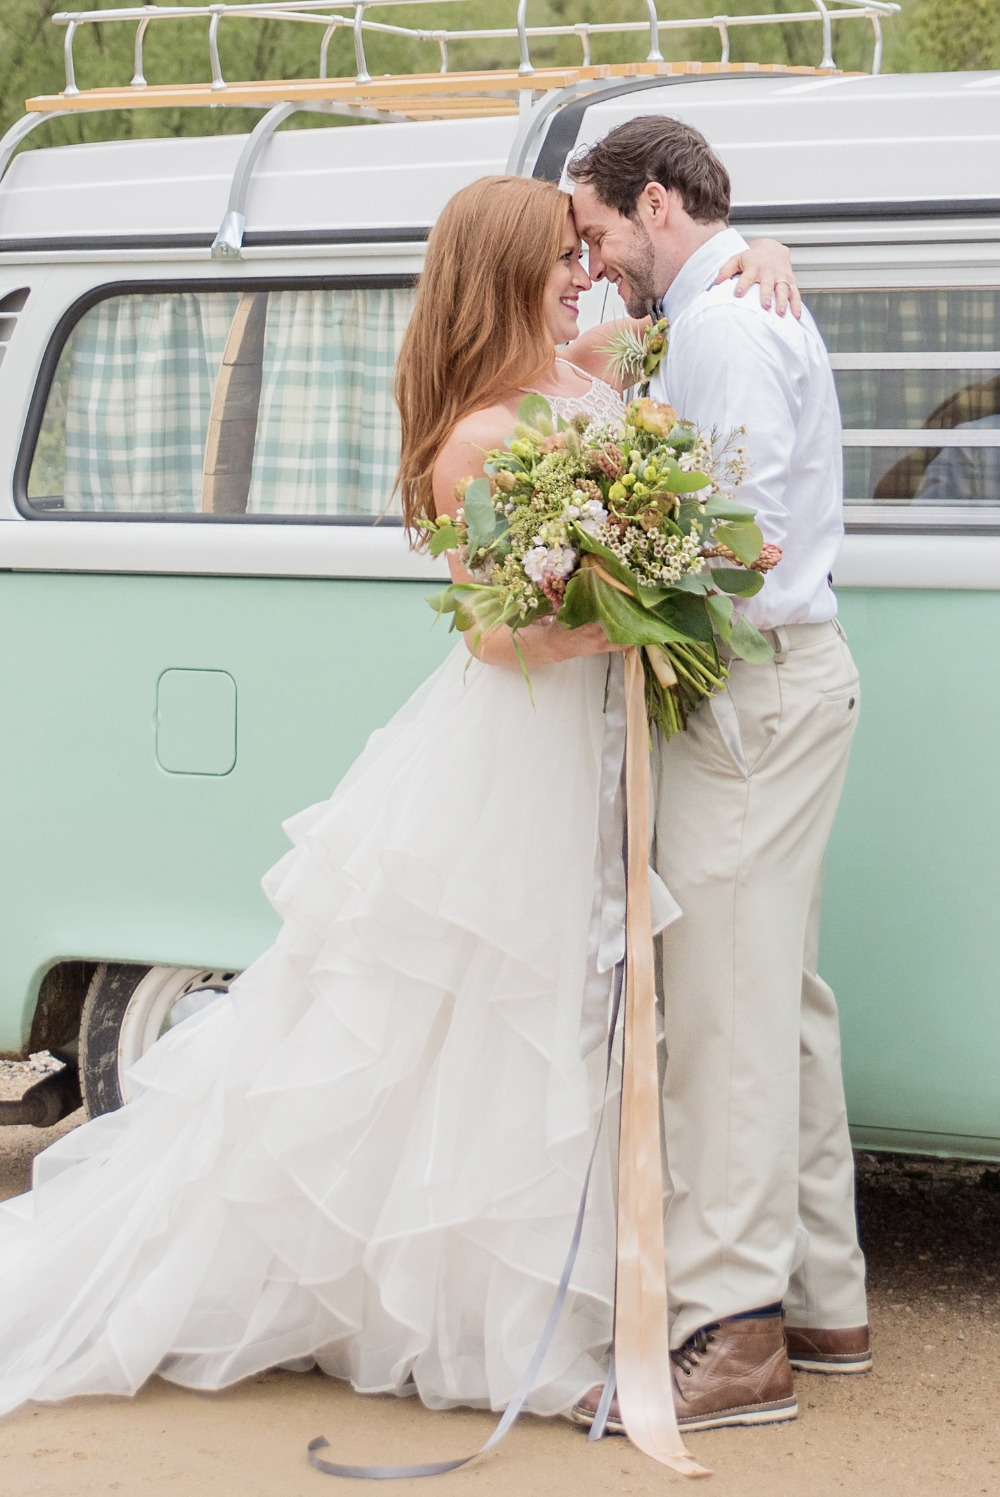 Romantic VW bus wedding inspiration